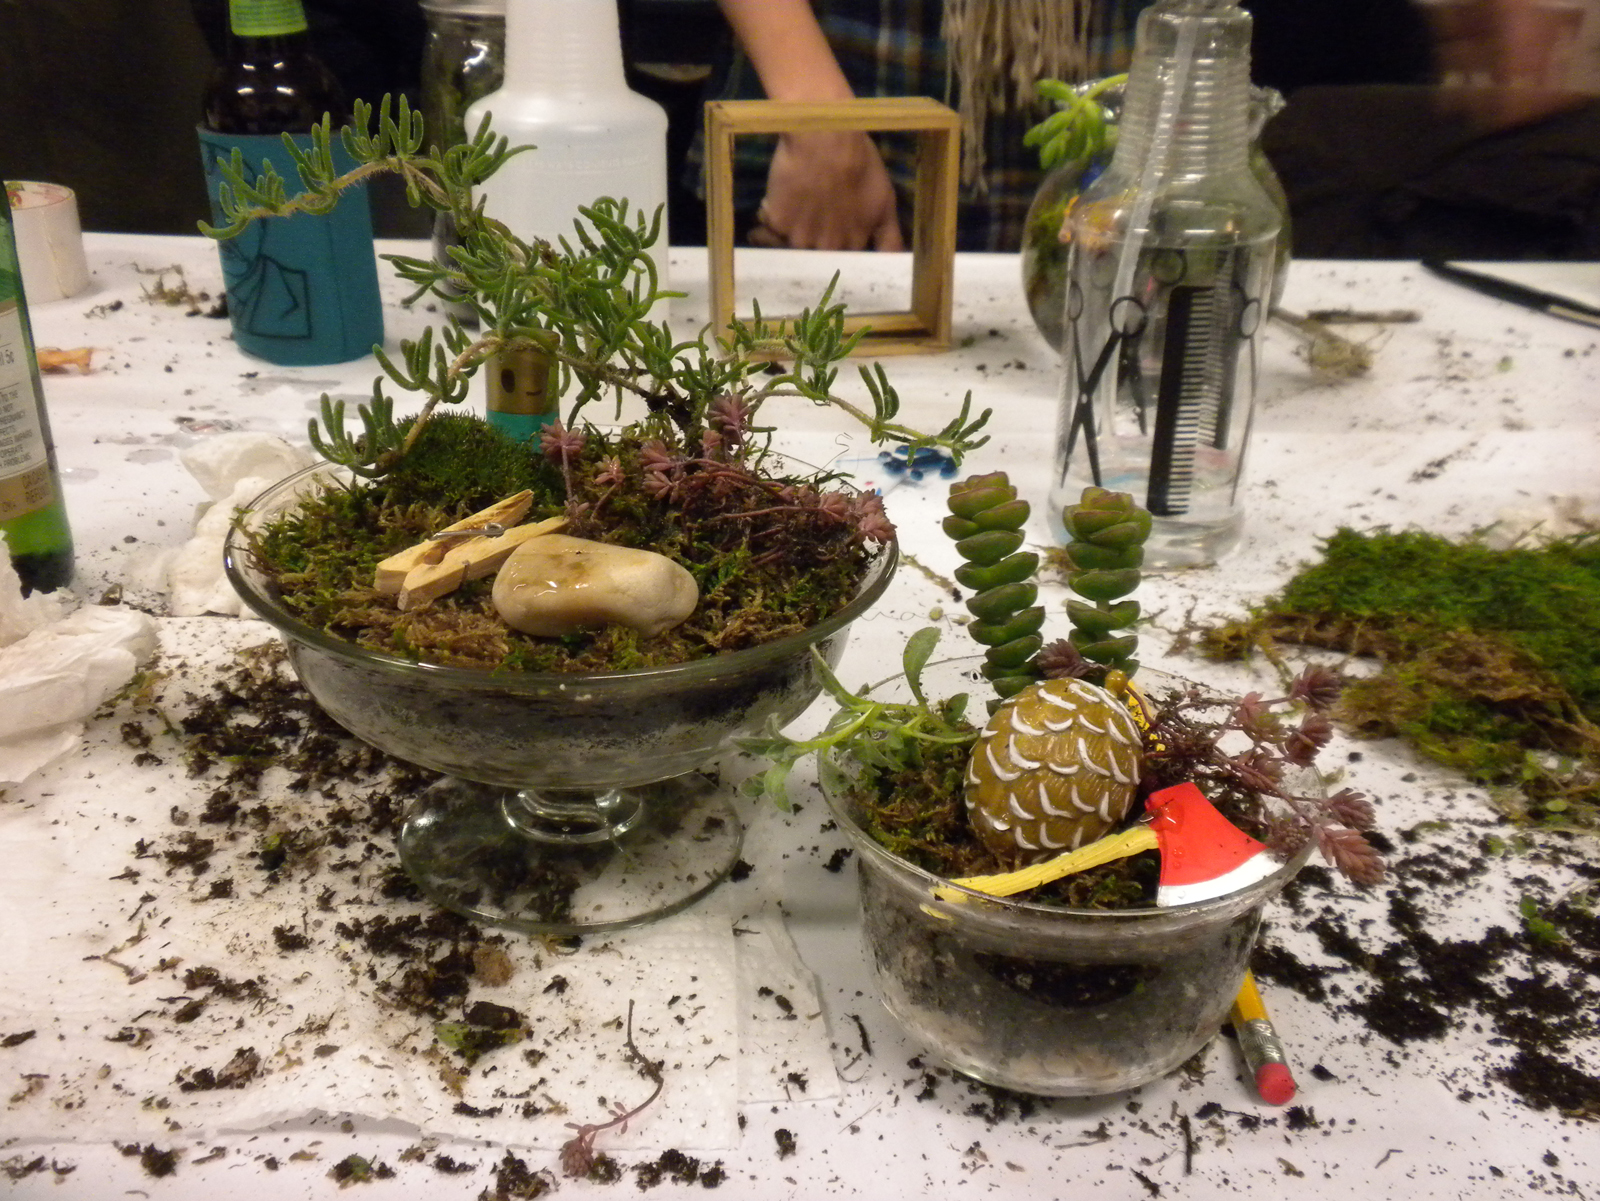 By the time the clock hit 8:30 pm, we had learned how to make a terrarium and completed some ourselves. Here are my two creations. Since the terrariums I planted are very open to the air, I will need to water them about twice a week with a water bottle se